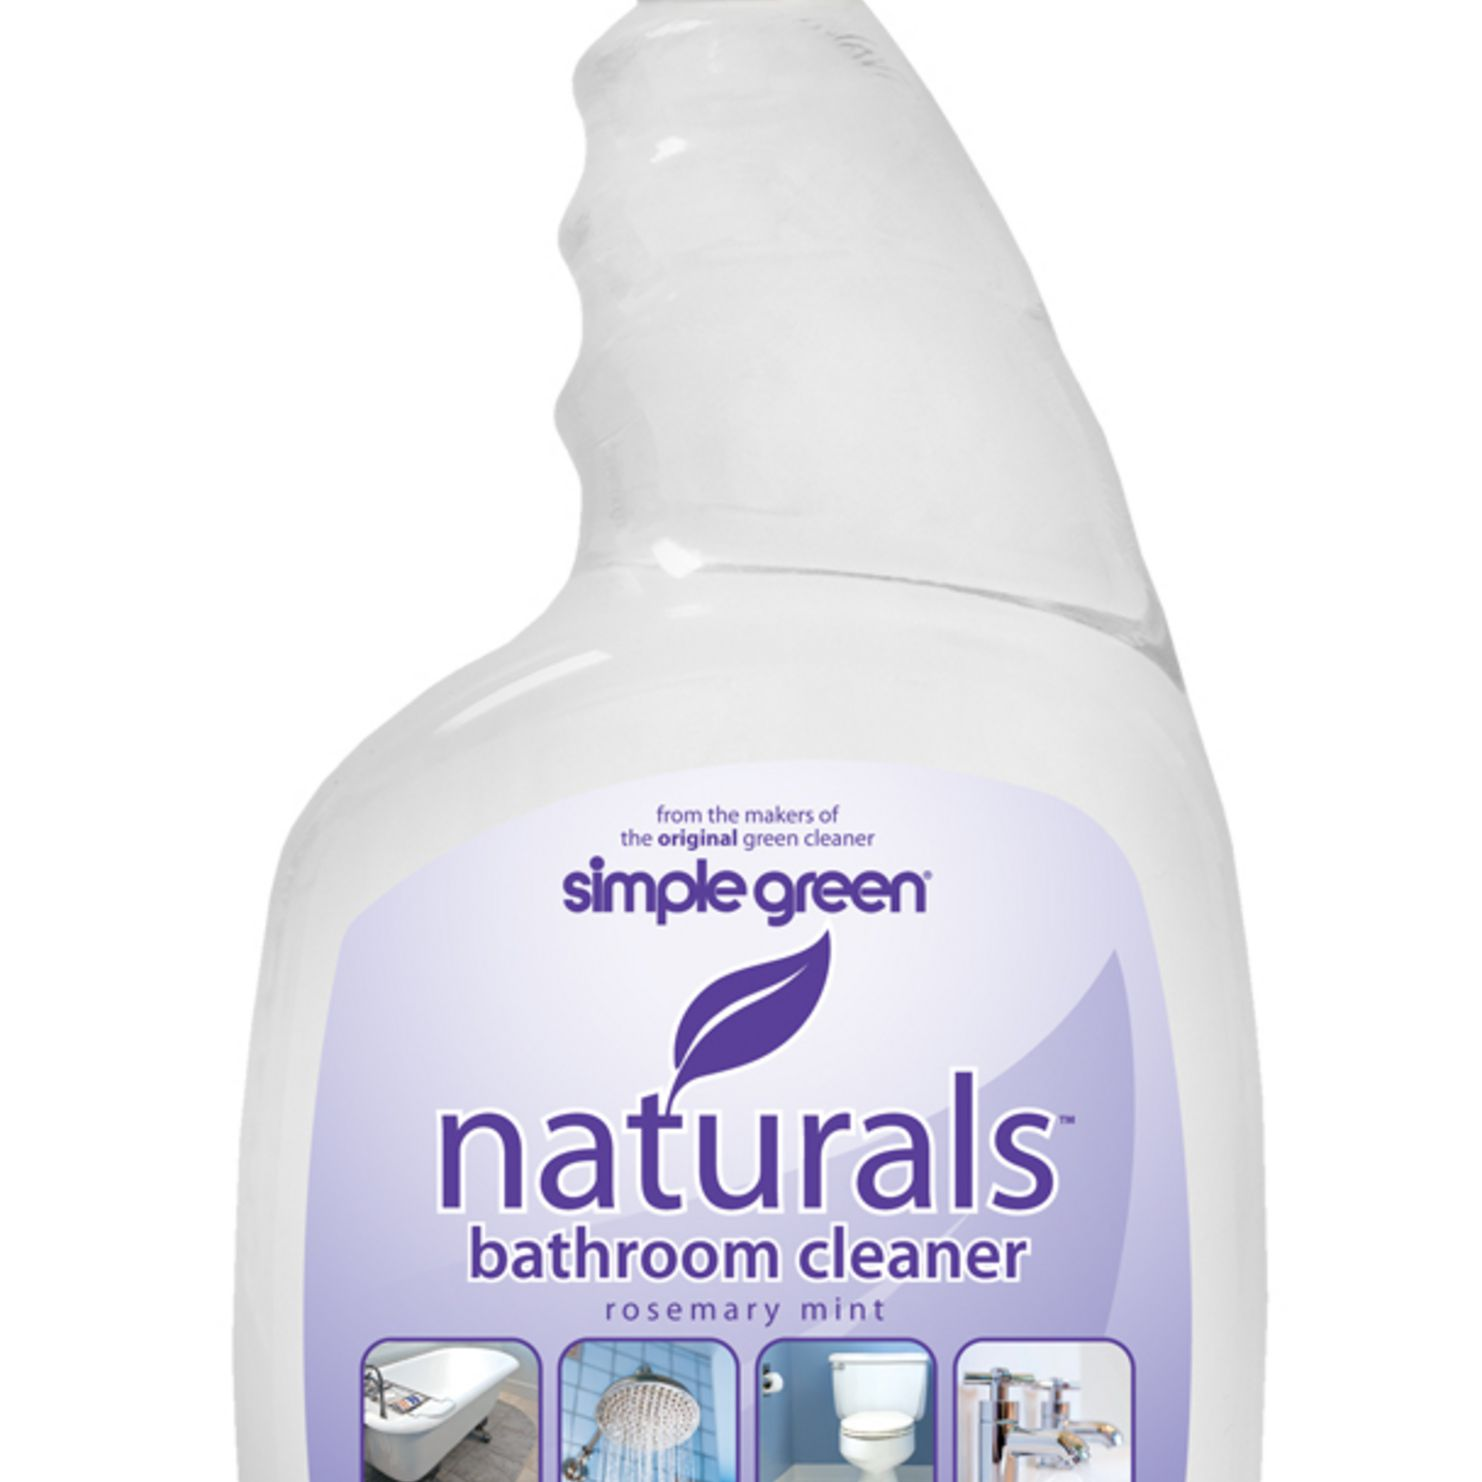 A bottle of Simple Green Naturals Bathroom Cleaner